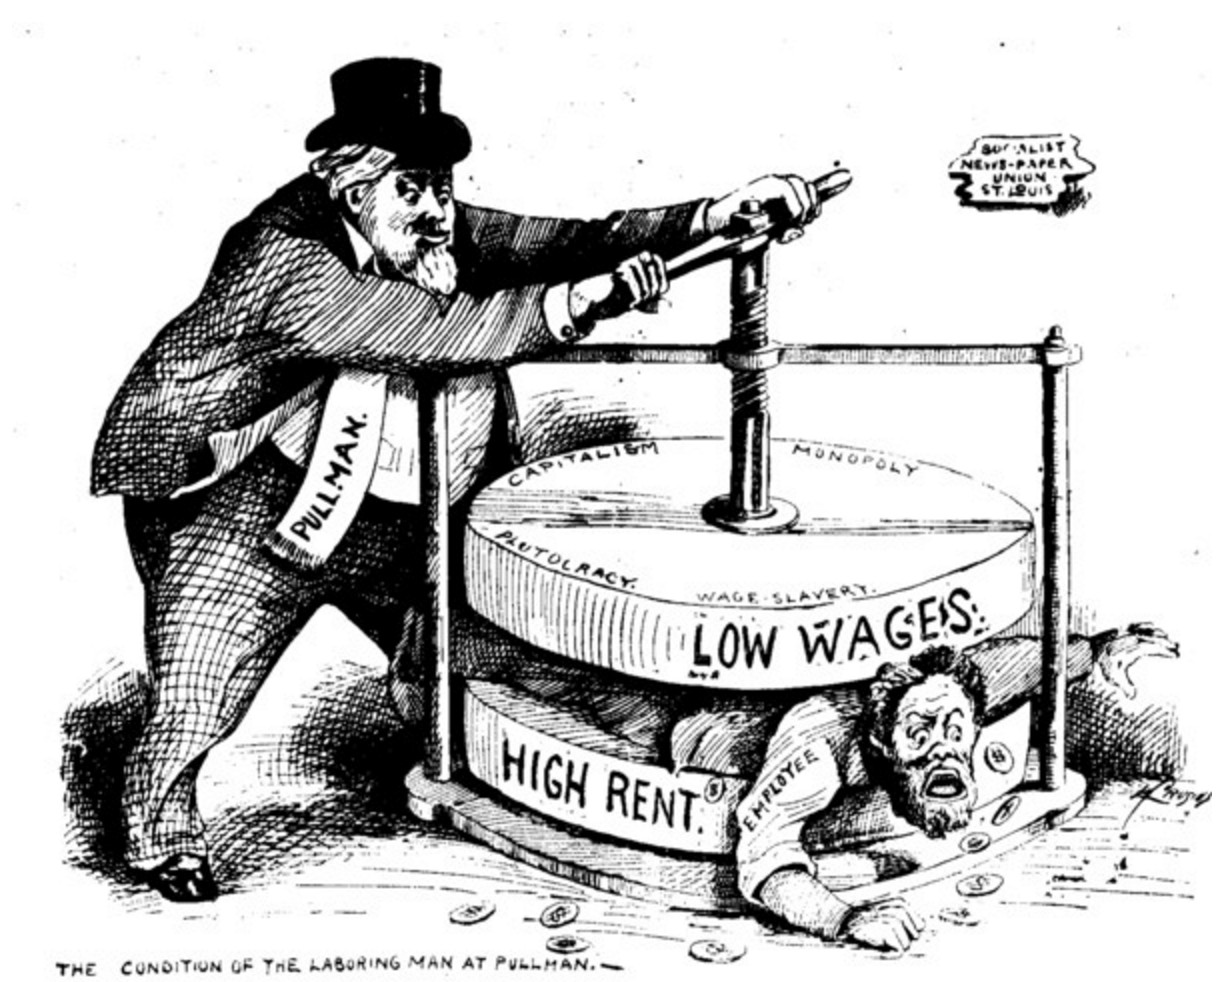 The Gilded Age has striking similarities with today, but not